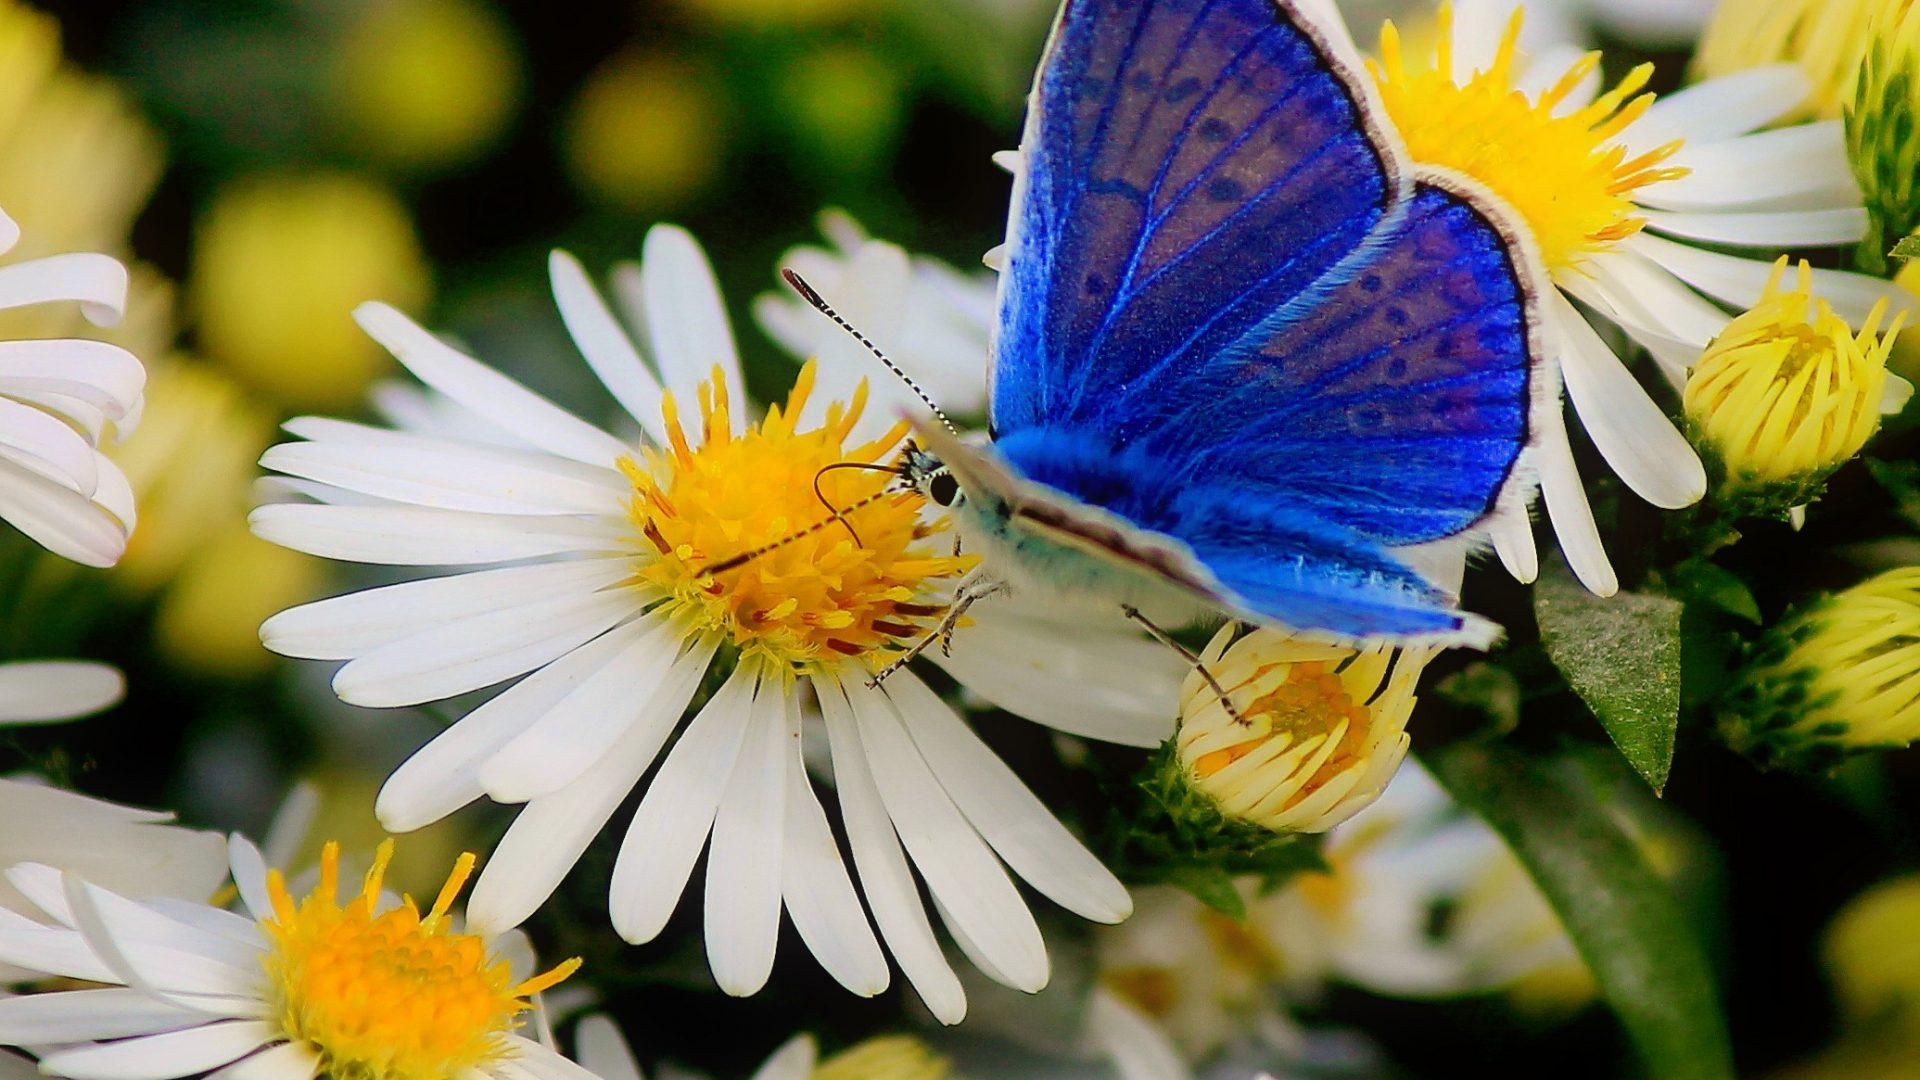 flowers daisies nature butterfly pretty beautiful beauty lovely harmony flower pic